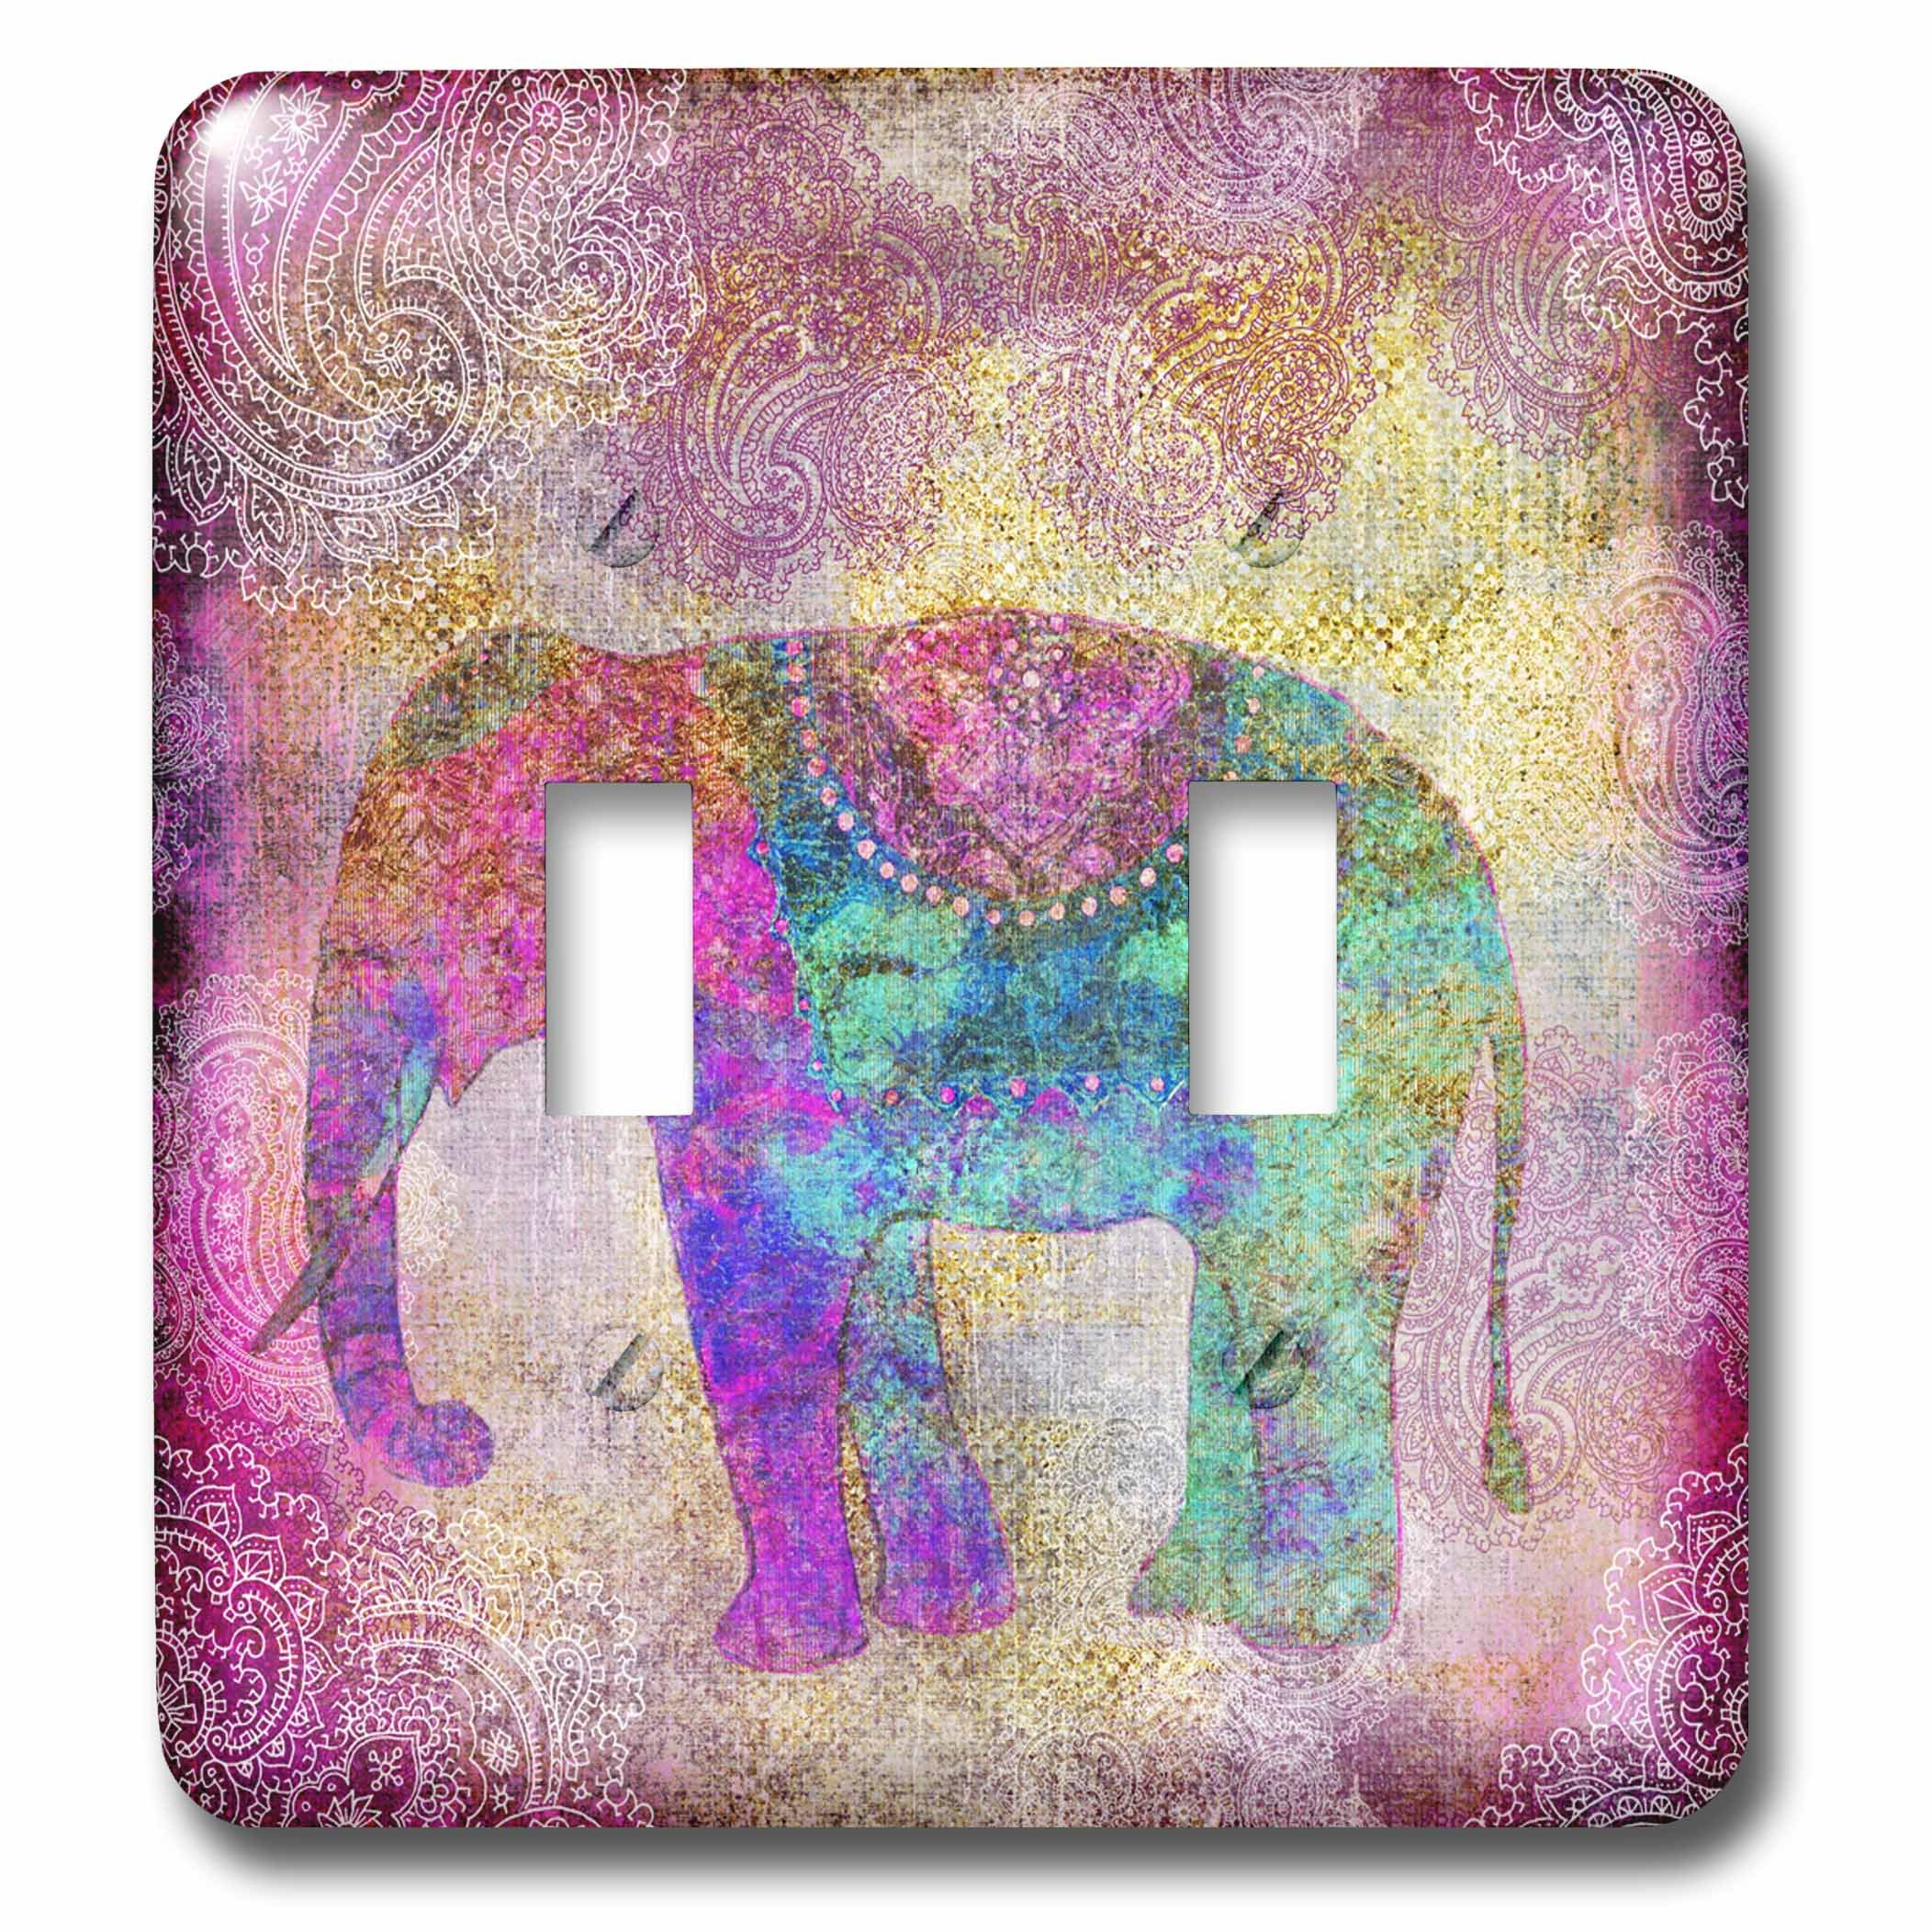 3dRose Andrea Haase Animals Illustration - Elephant India style with golden ornament pattern background - Light Switch Covers - double toggle switch (lsp_266474_2)